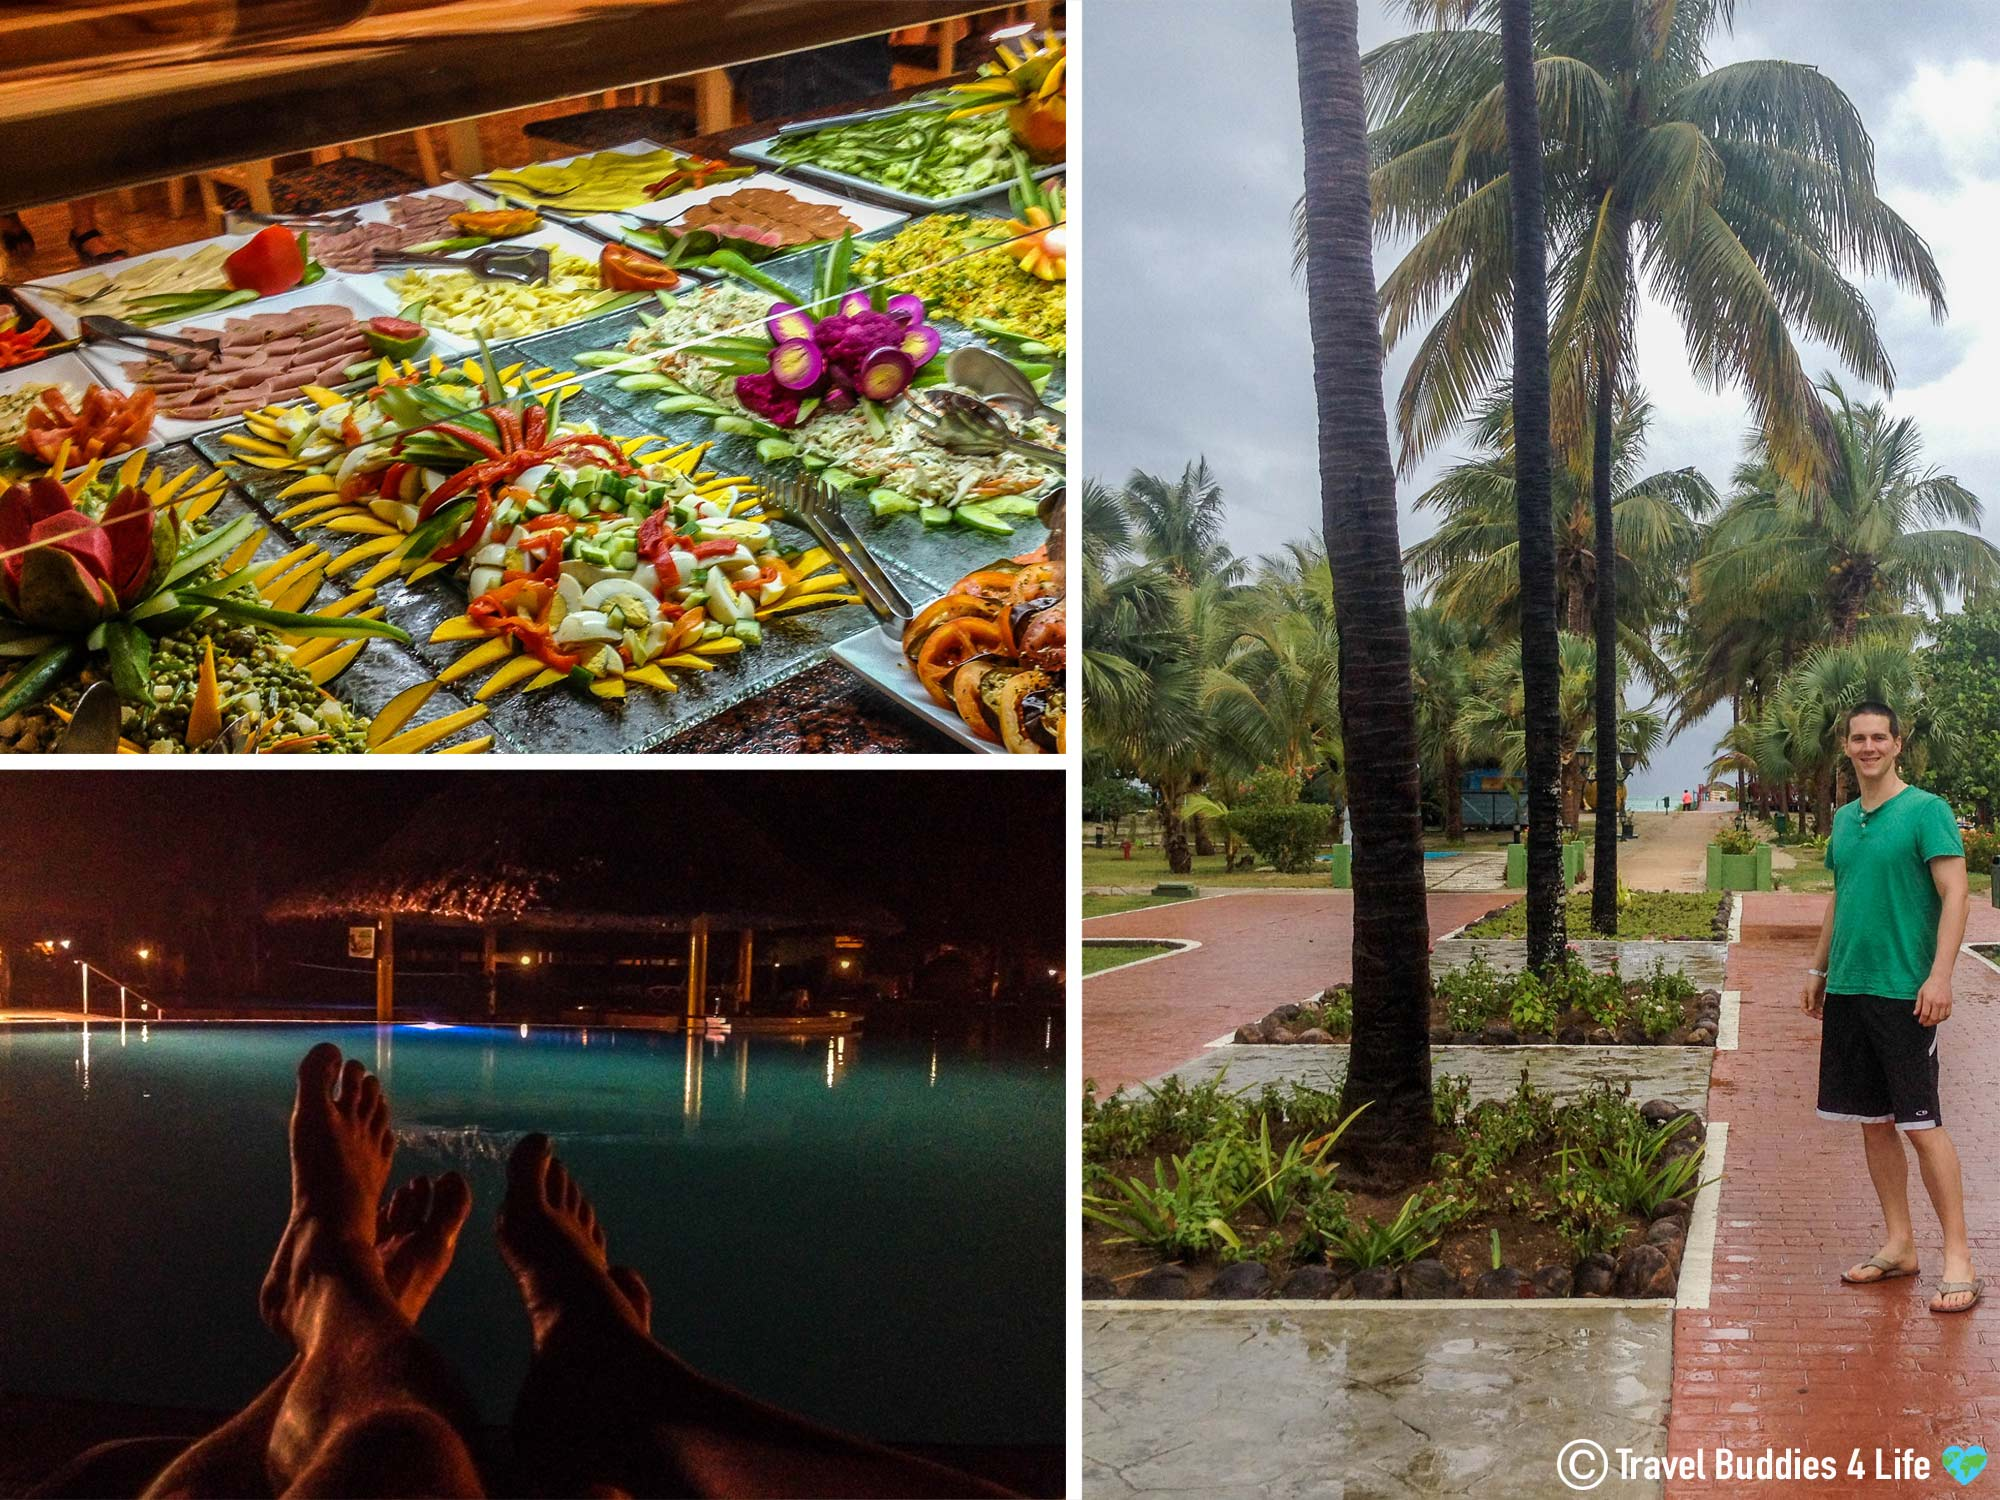 Enjoying The Vacation Perks Of Staying In An All Inclusive Resort In Varadero, Cuba